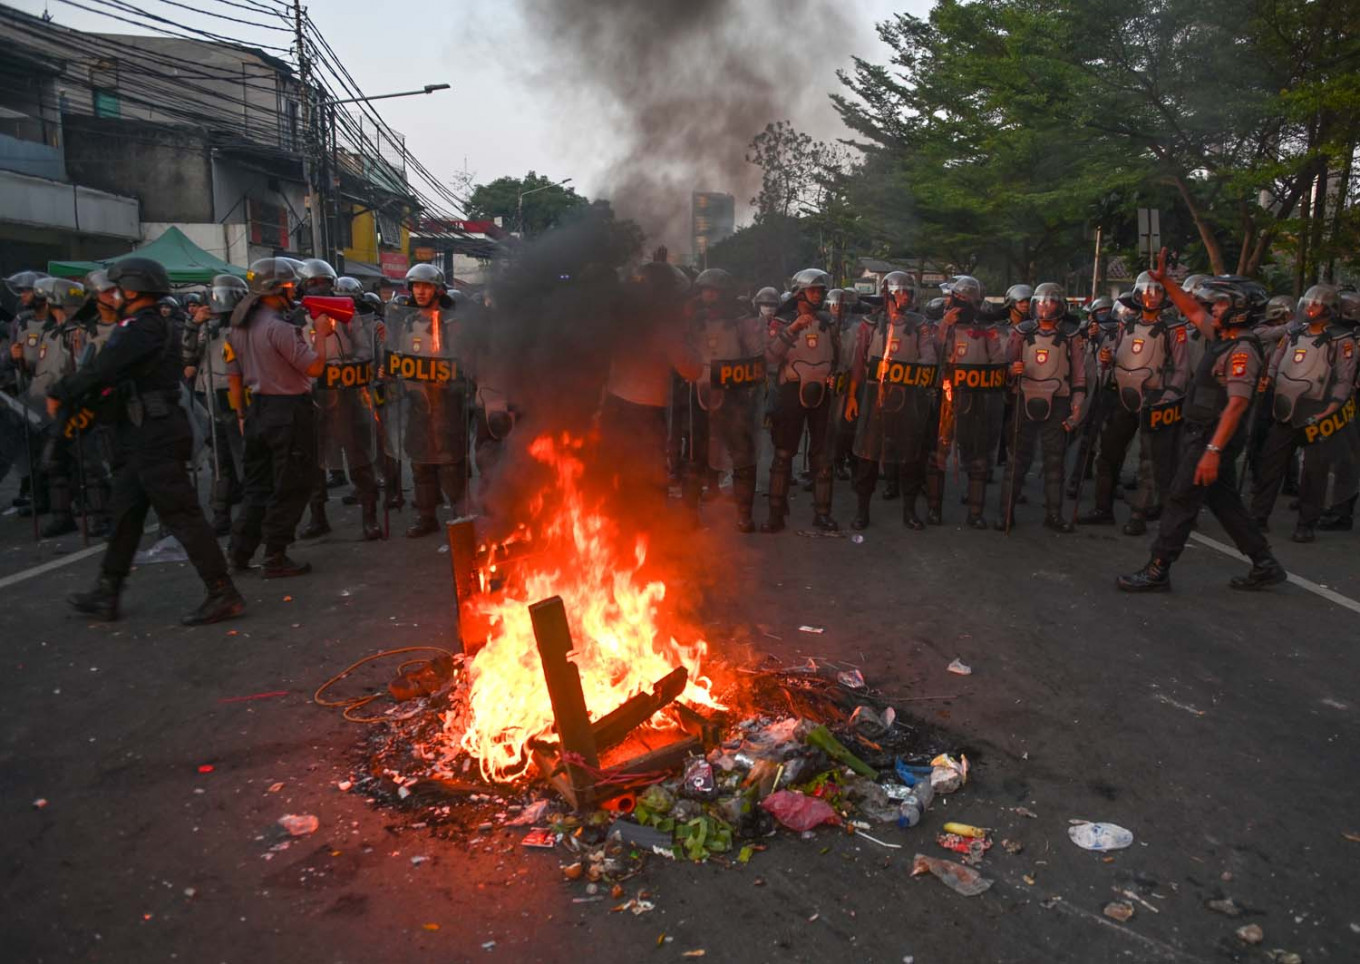 Six dead after election riots erupt in Indonesia's capital